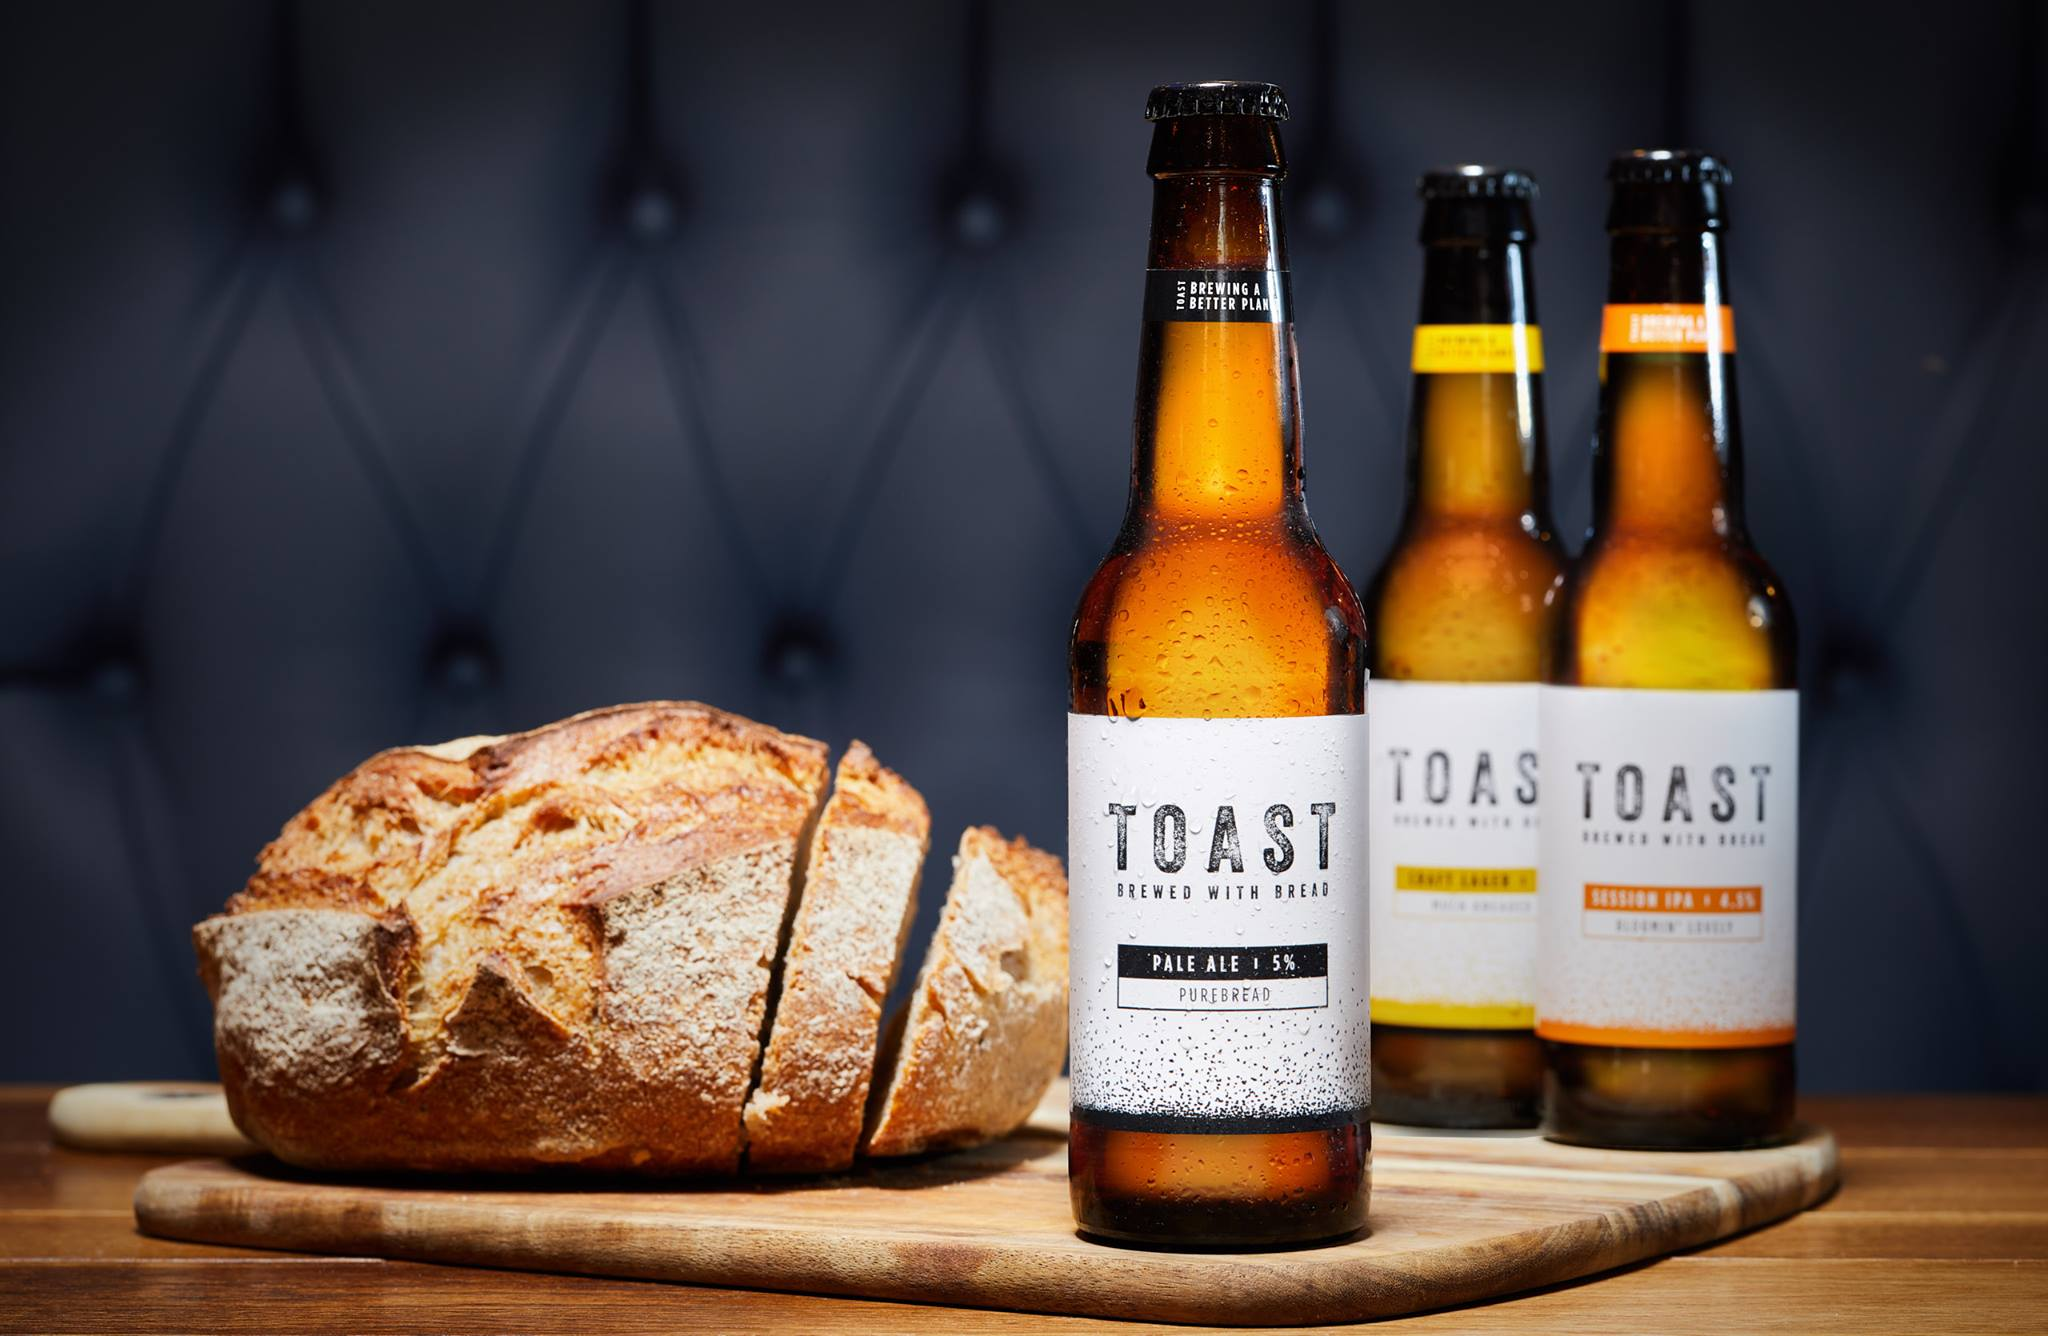 Toast Ale is made from surplus bread.